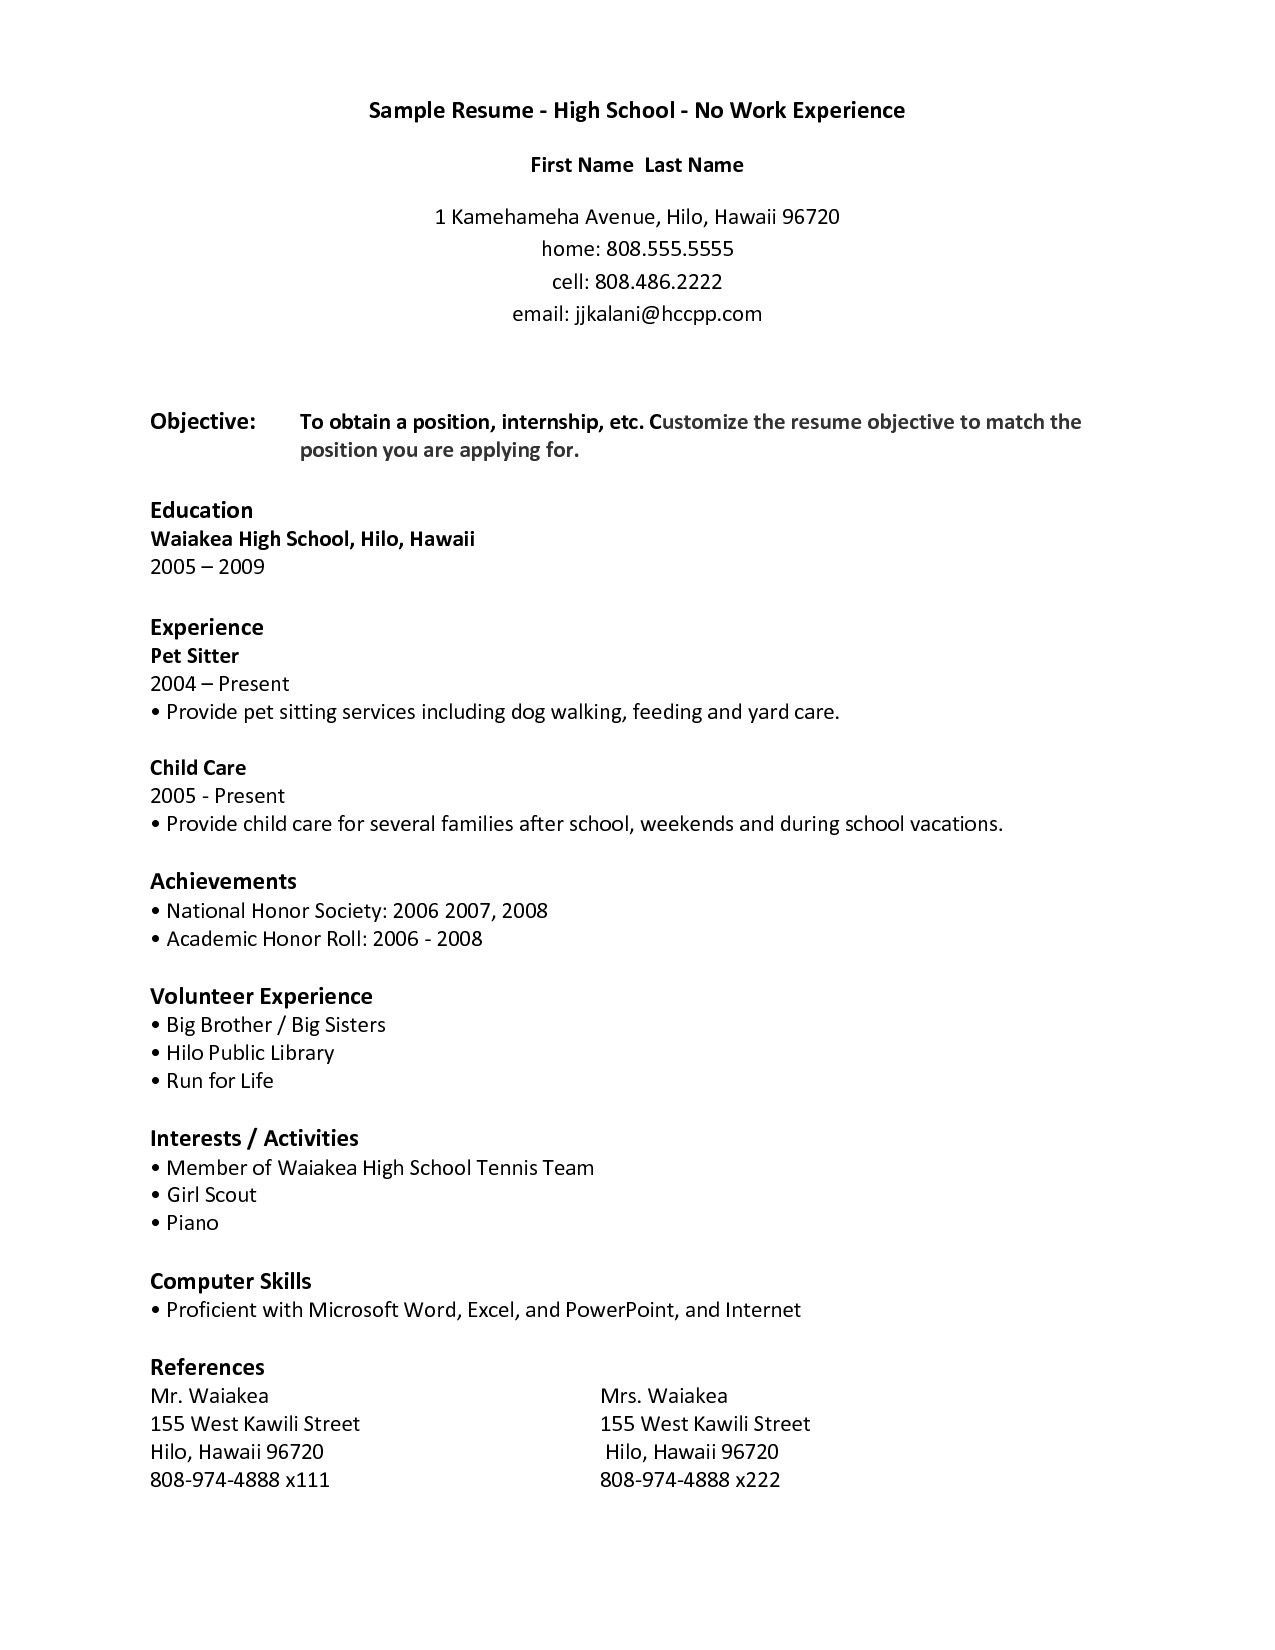 Free Resume Templates No Work Experience Student resume